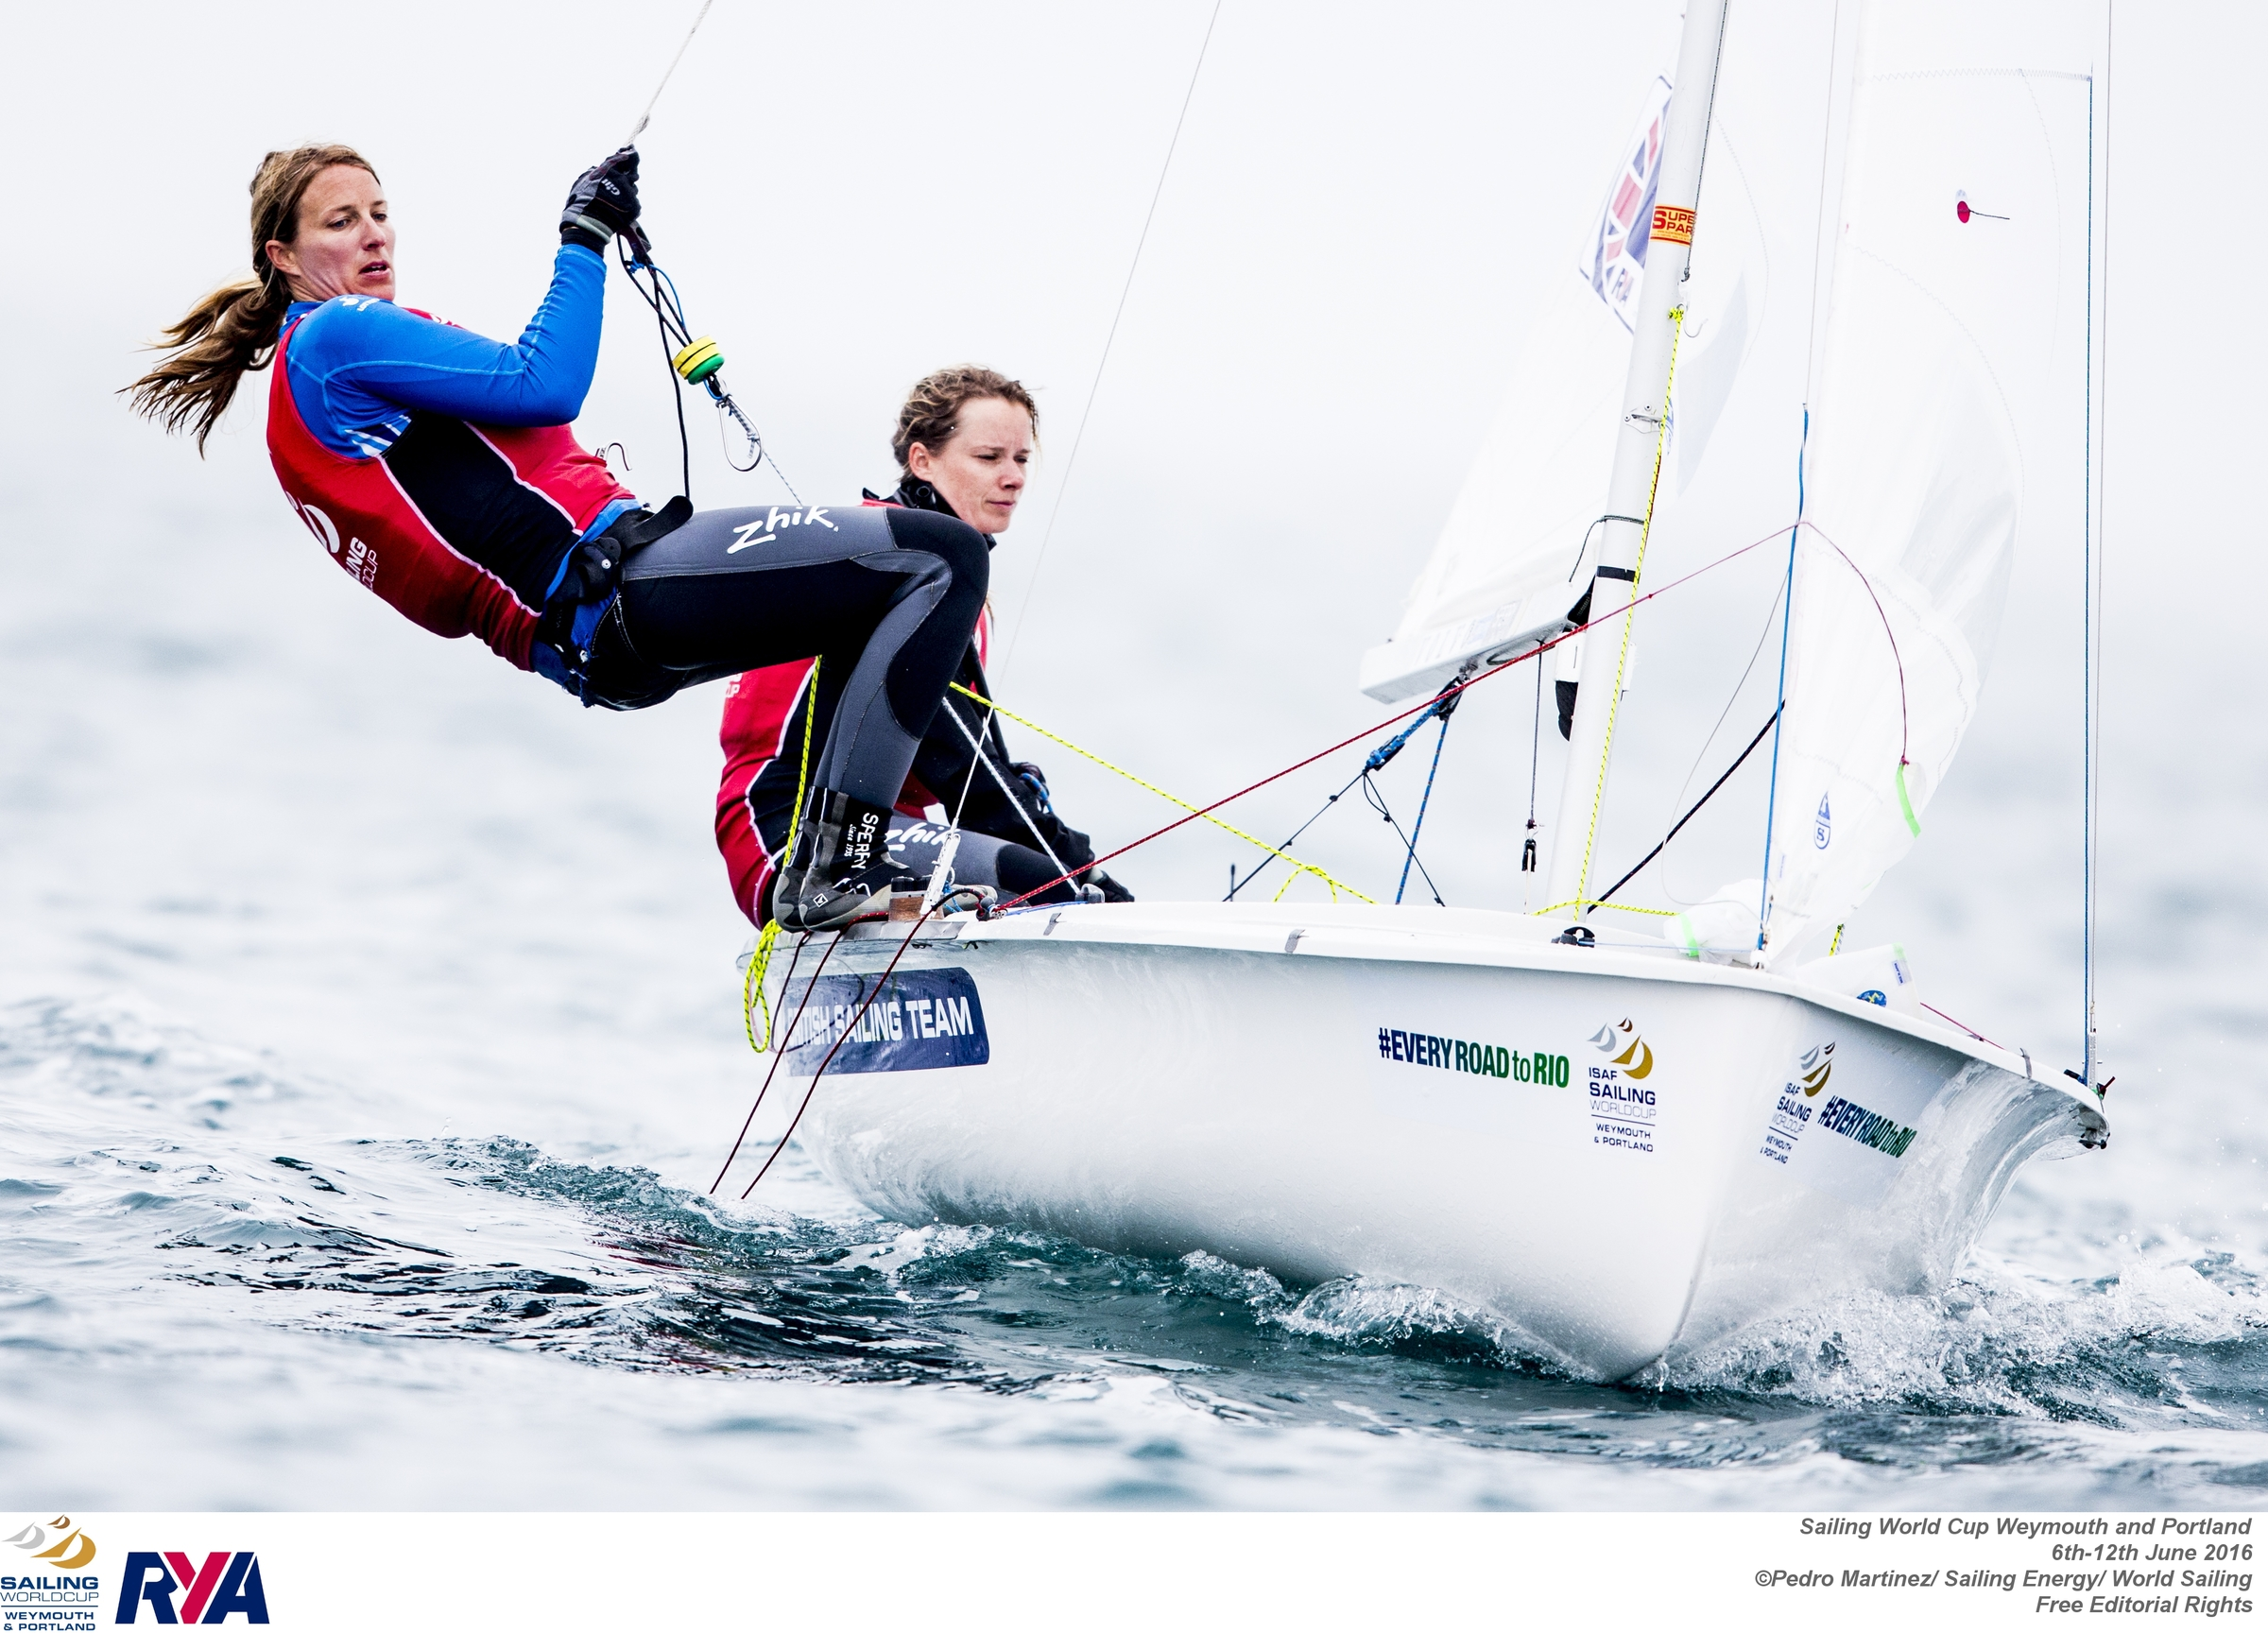 Saskia Clark (left) and Hannah Mills are well-placed at the Sailing World Cup in Weymouth but ready for the pressure of trying to record a home win